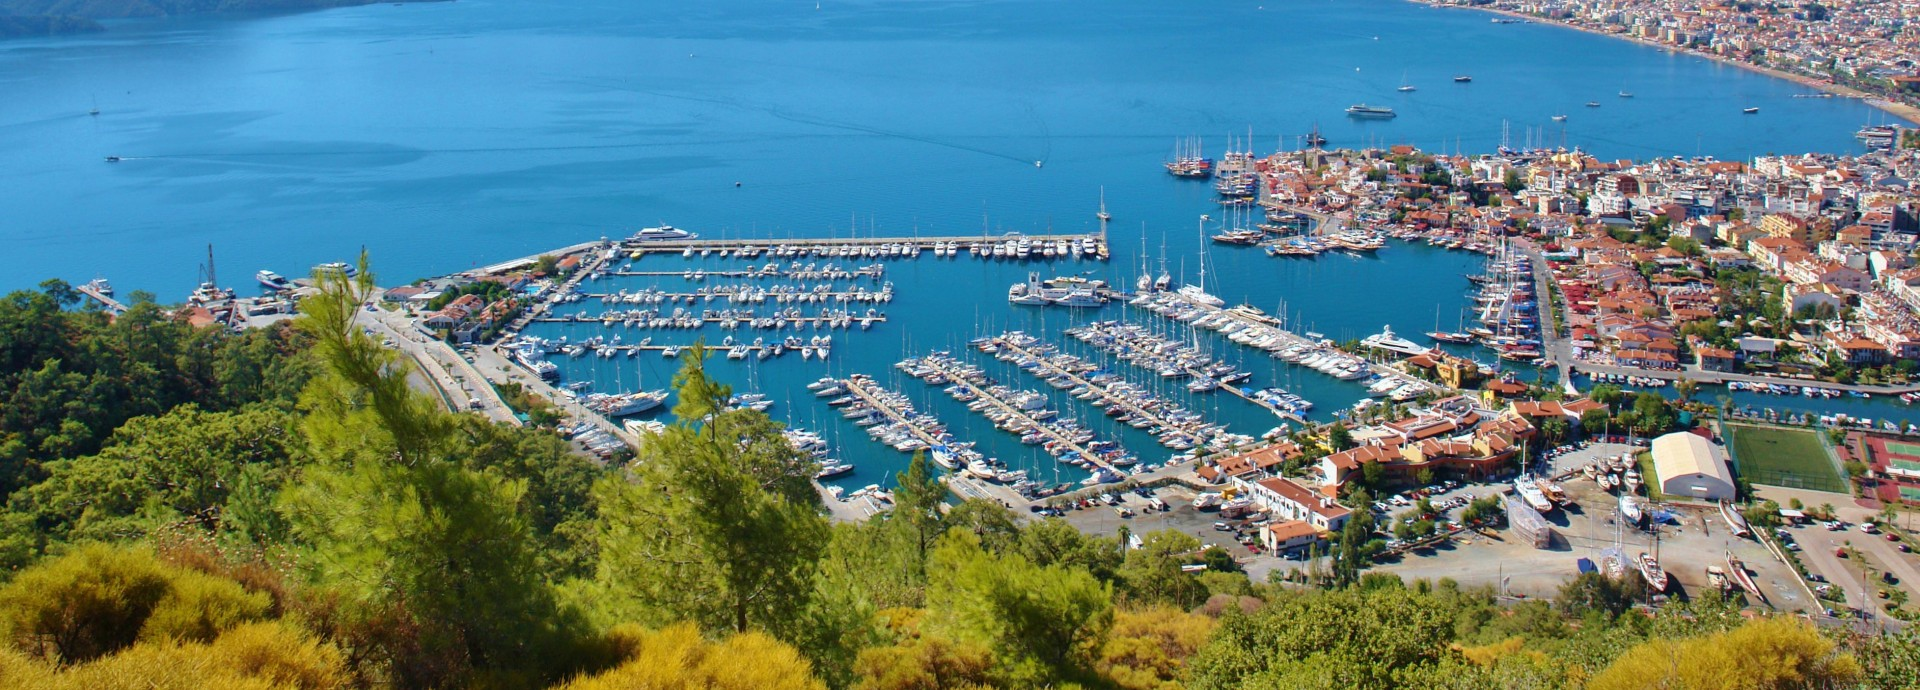 Marvellous Marmaris Marina from above